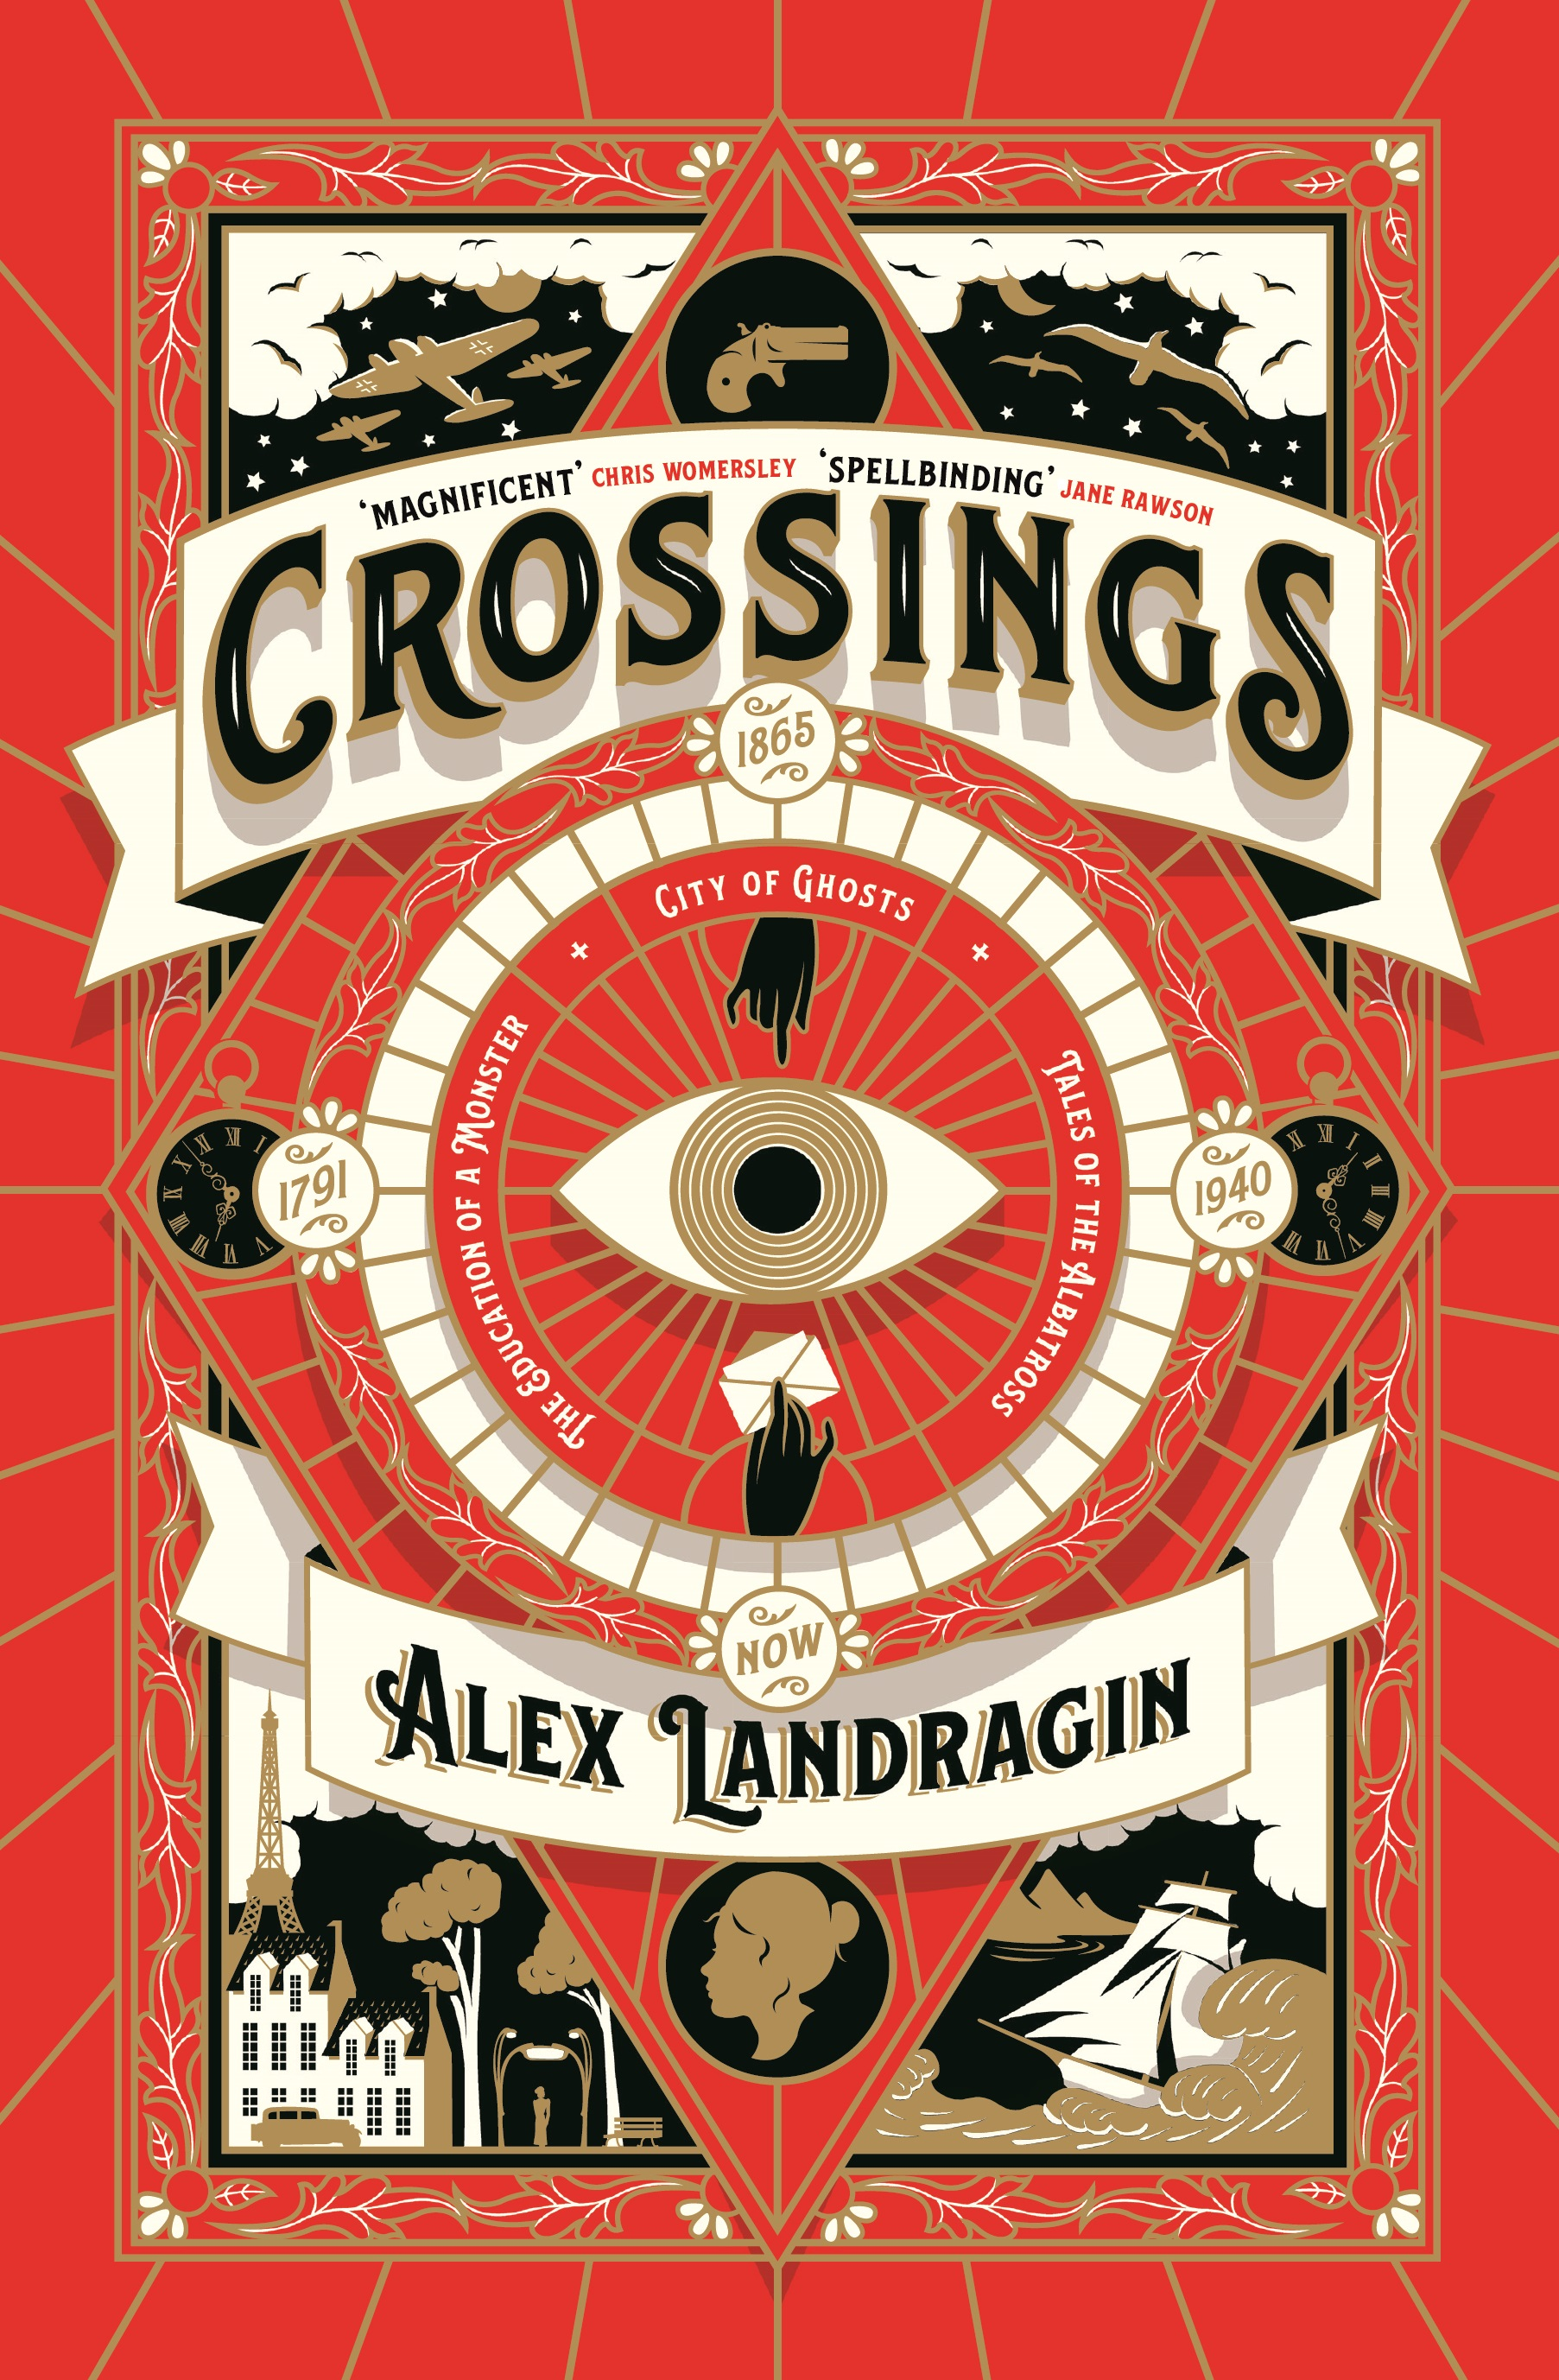 Cover image of 'Crossings' by Alex Landragin